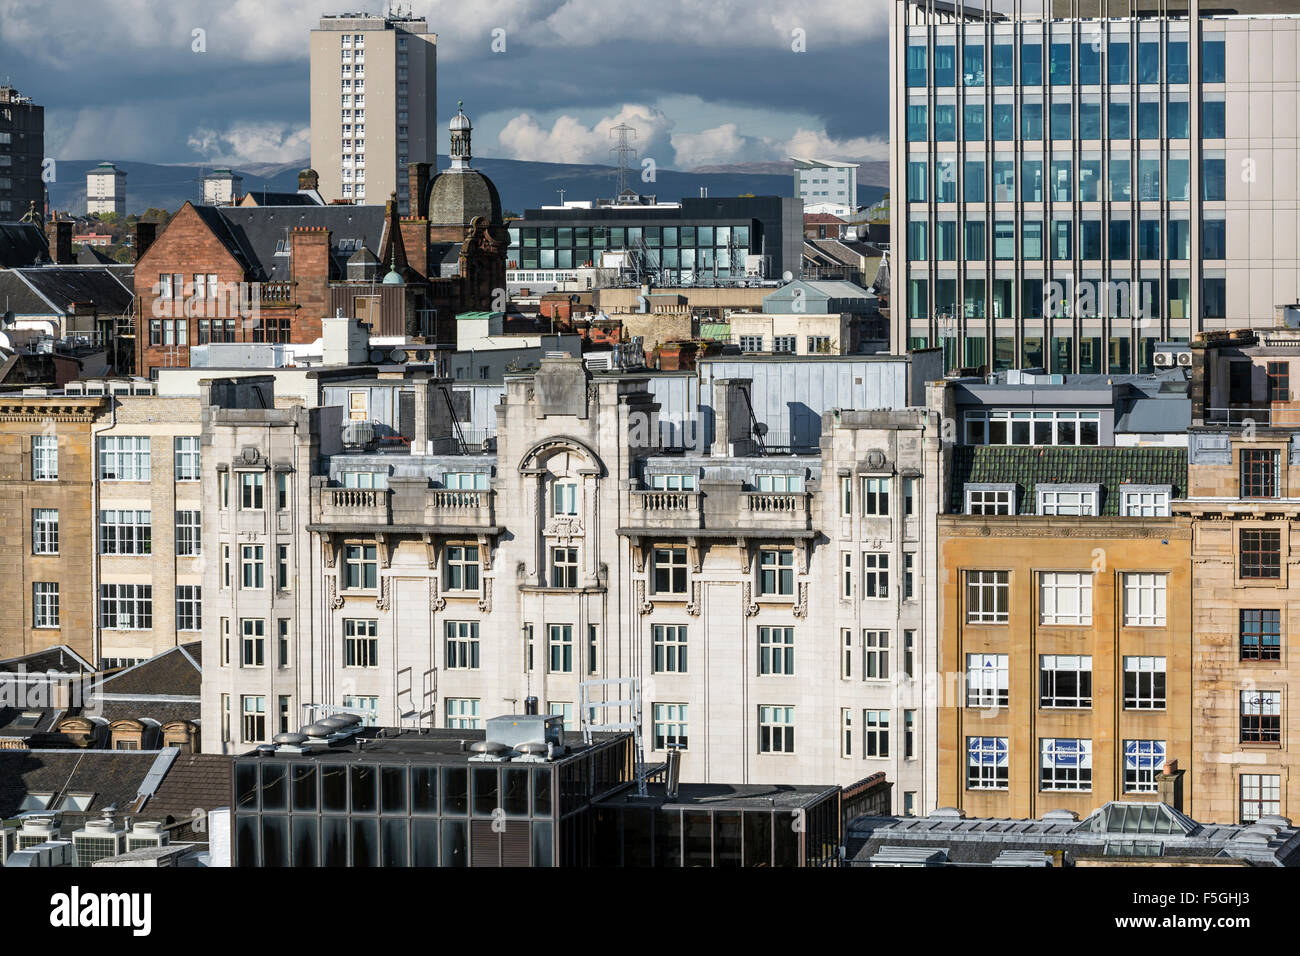 Rooftop view over Glasgow city centre, Scotland, UK - Stock Image